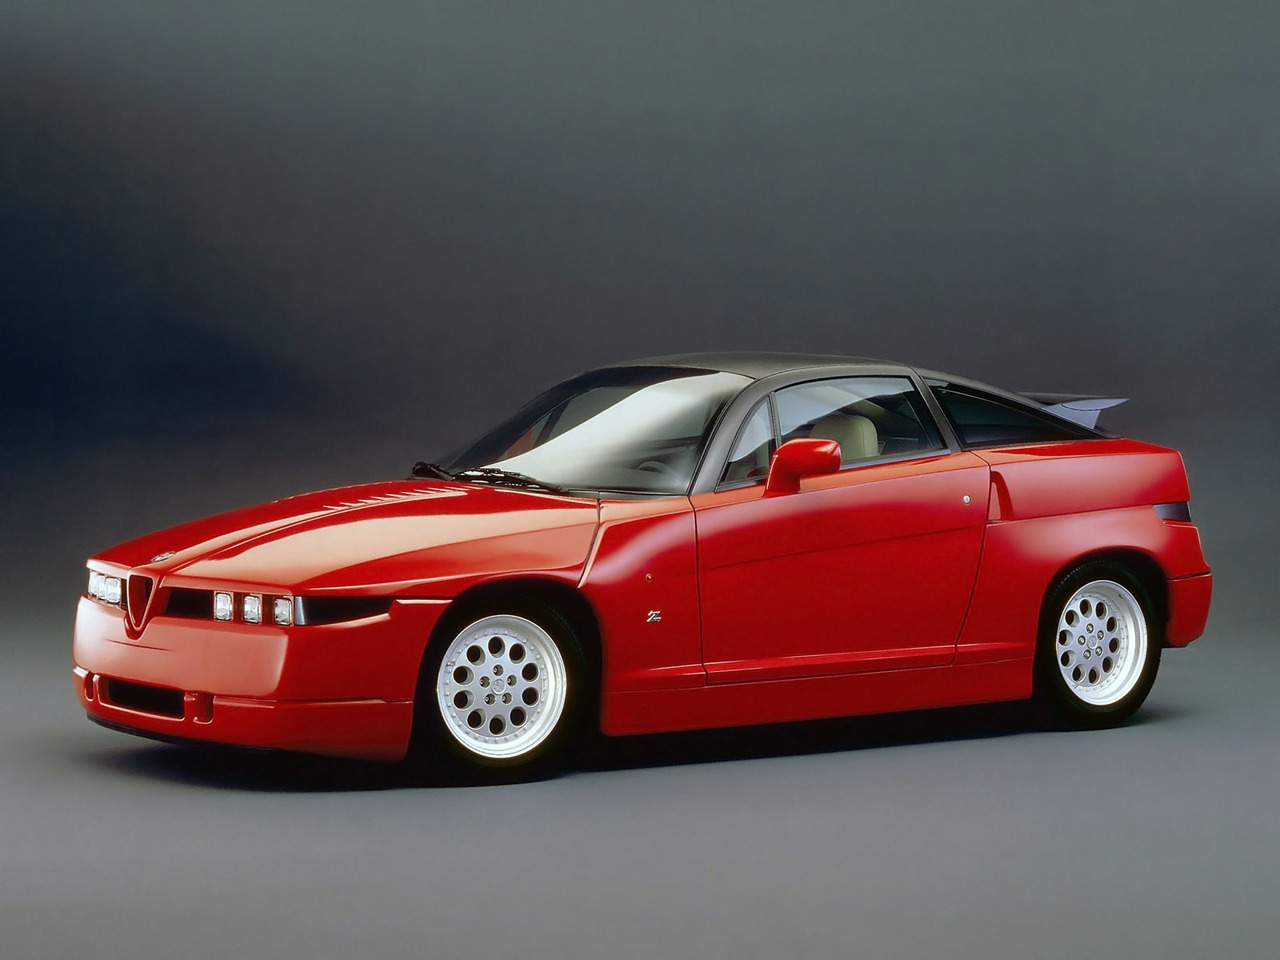 alfa romeo archives page 2 of 5 old concept cars. Black Bedroom Furniture Sets. Home Design Ideas